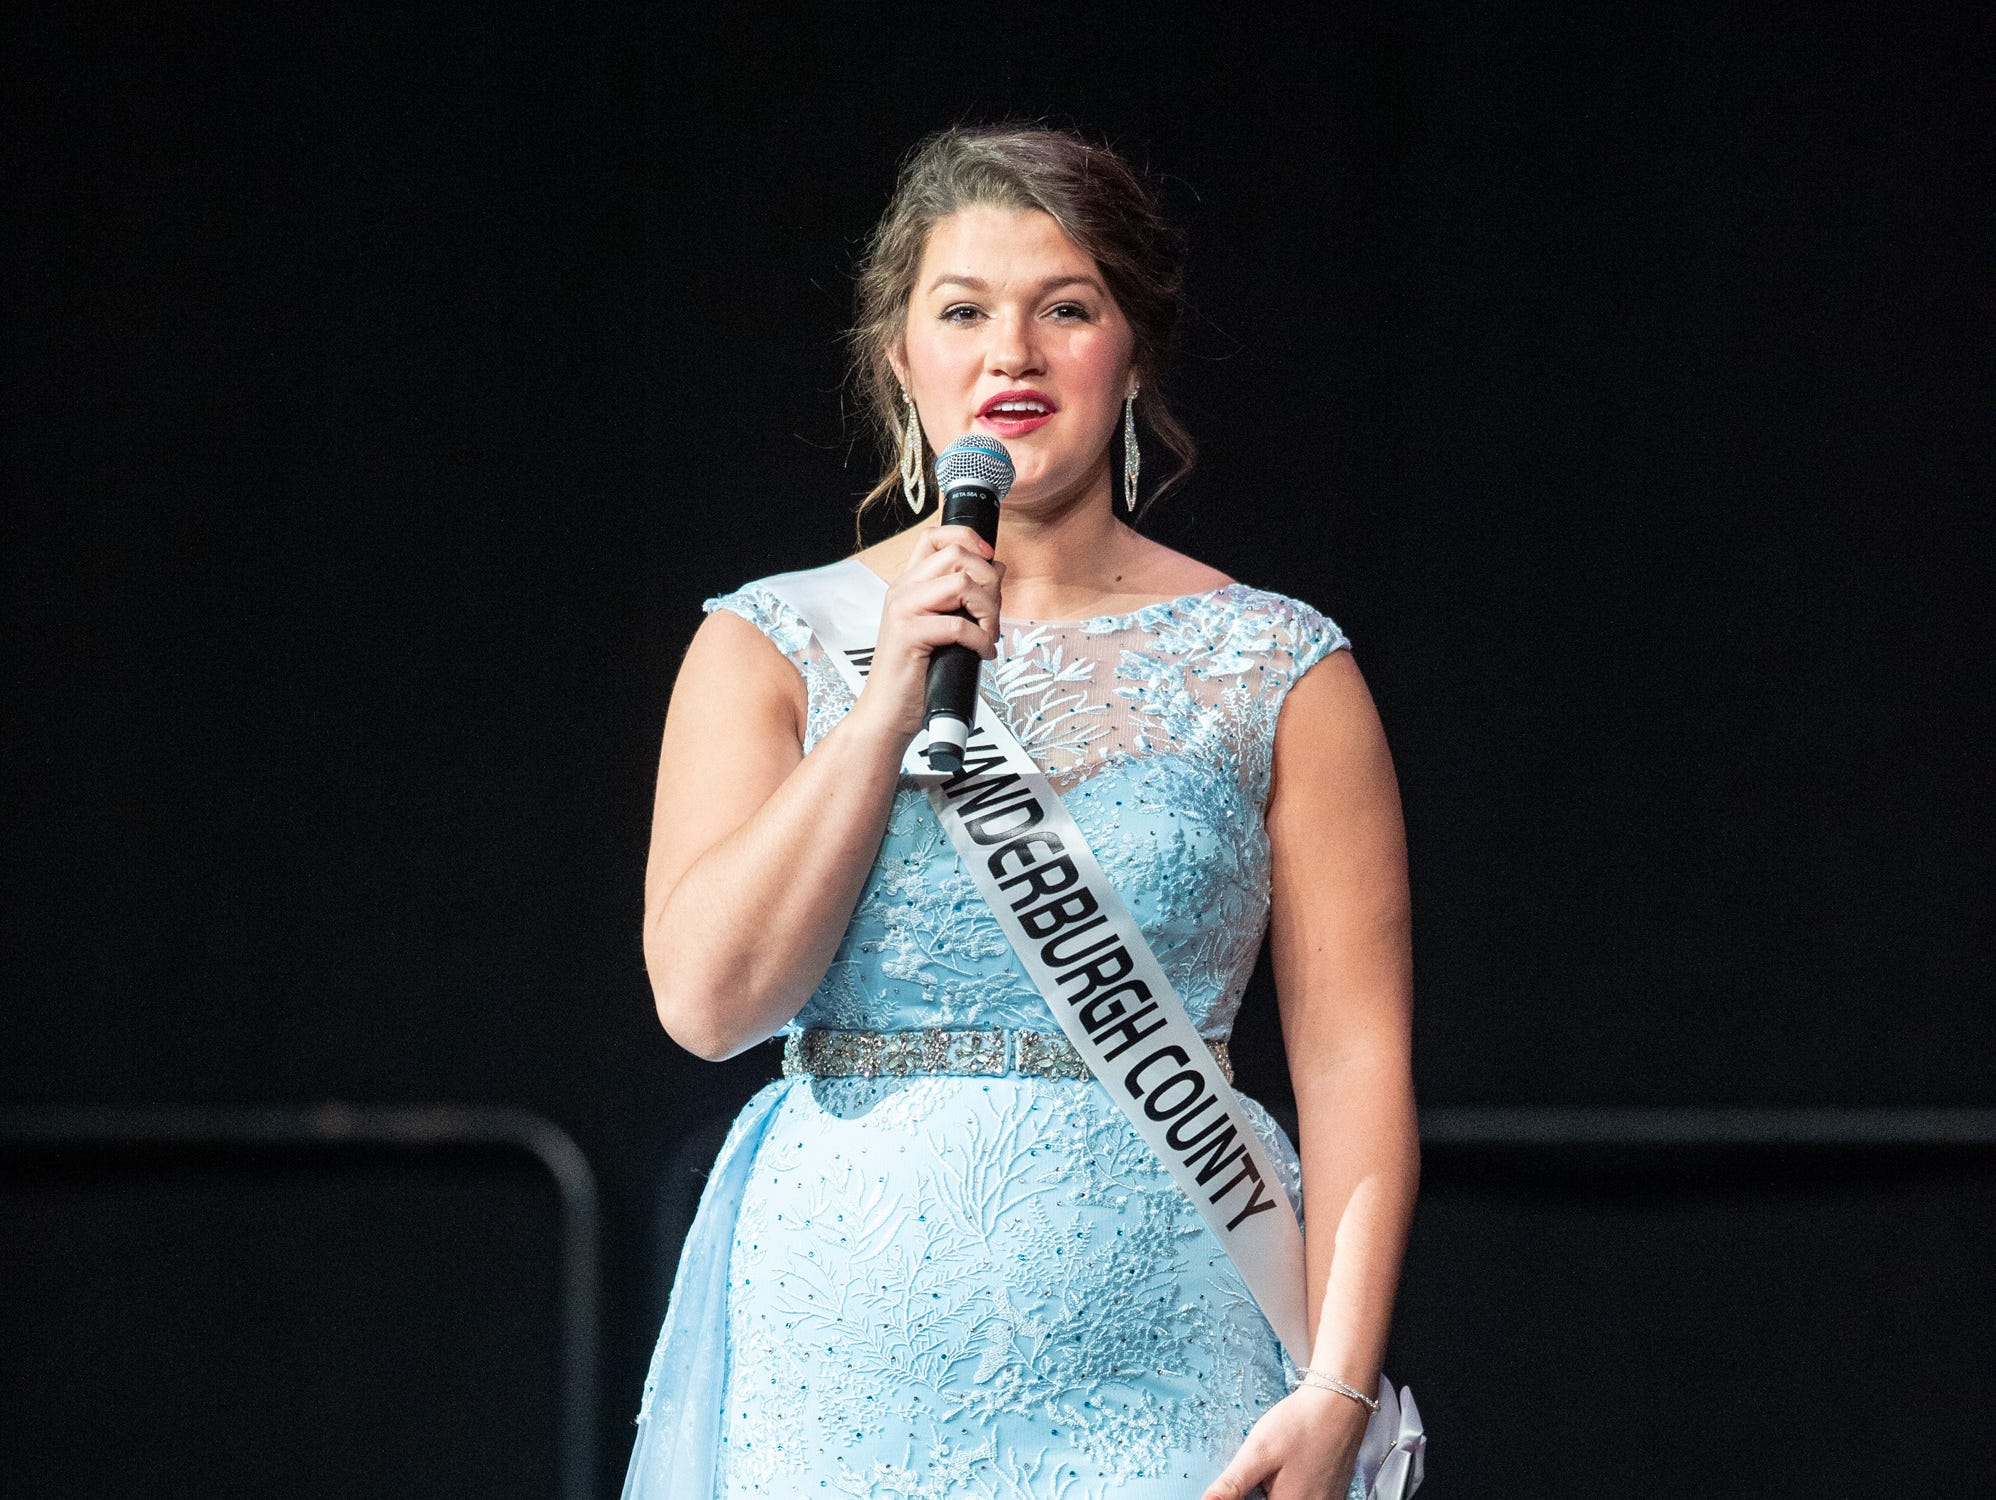 Miss Vanderburgh County, Lauren Ziliak, was given a word to use in a spontaneous response during the 61st Indiana State Fair Queen Pageant at the Indiana State Fairgrounds in Indianapolis on Sunday, Jan. 6, 2019.